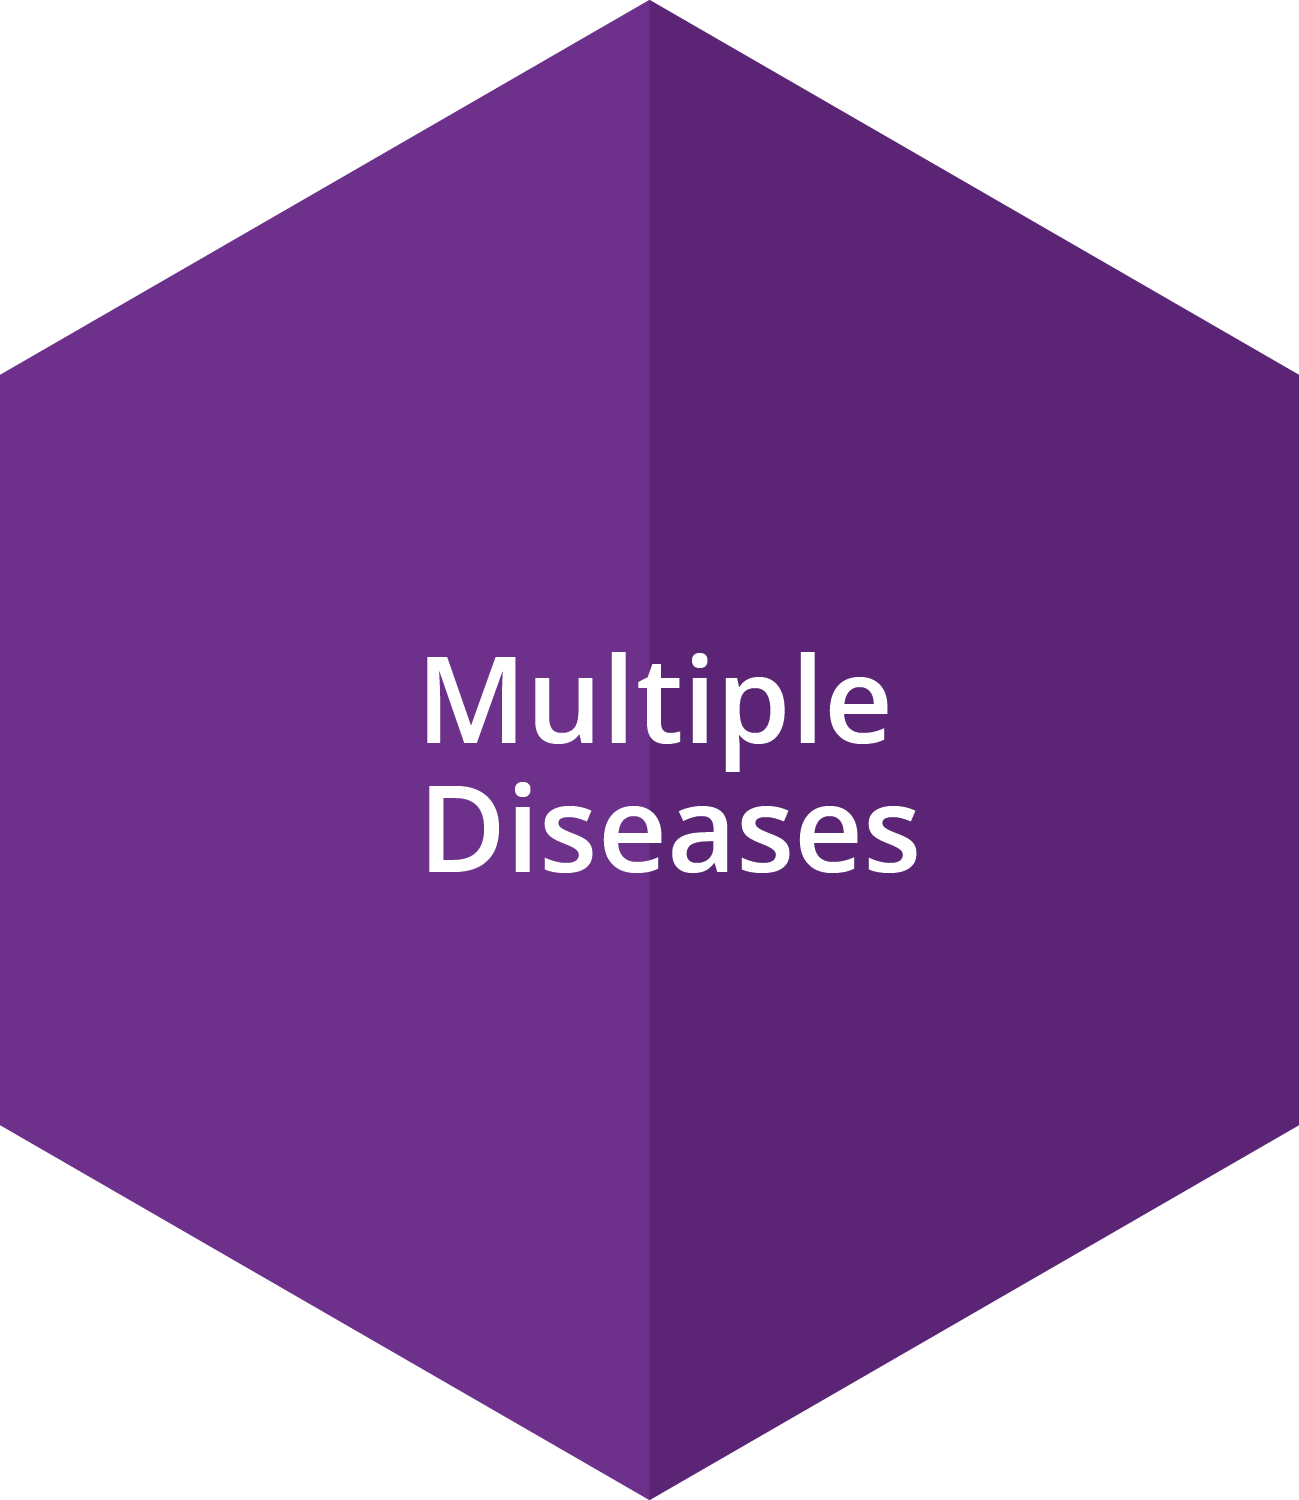 Multiple Diseases